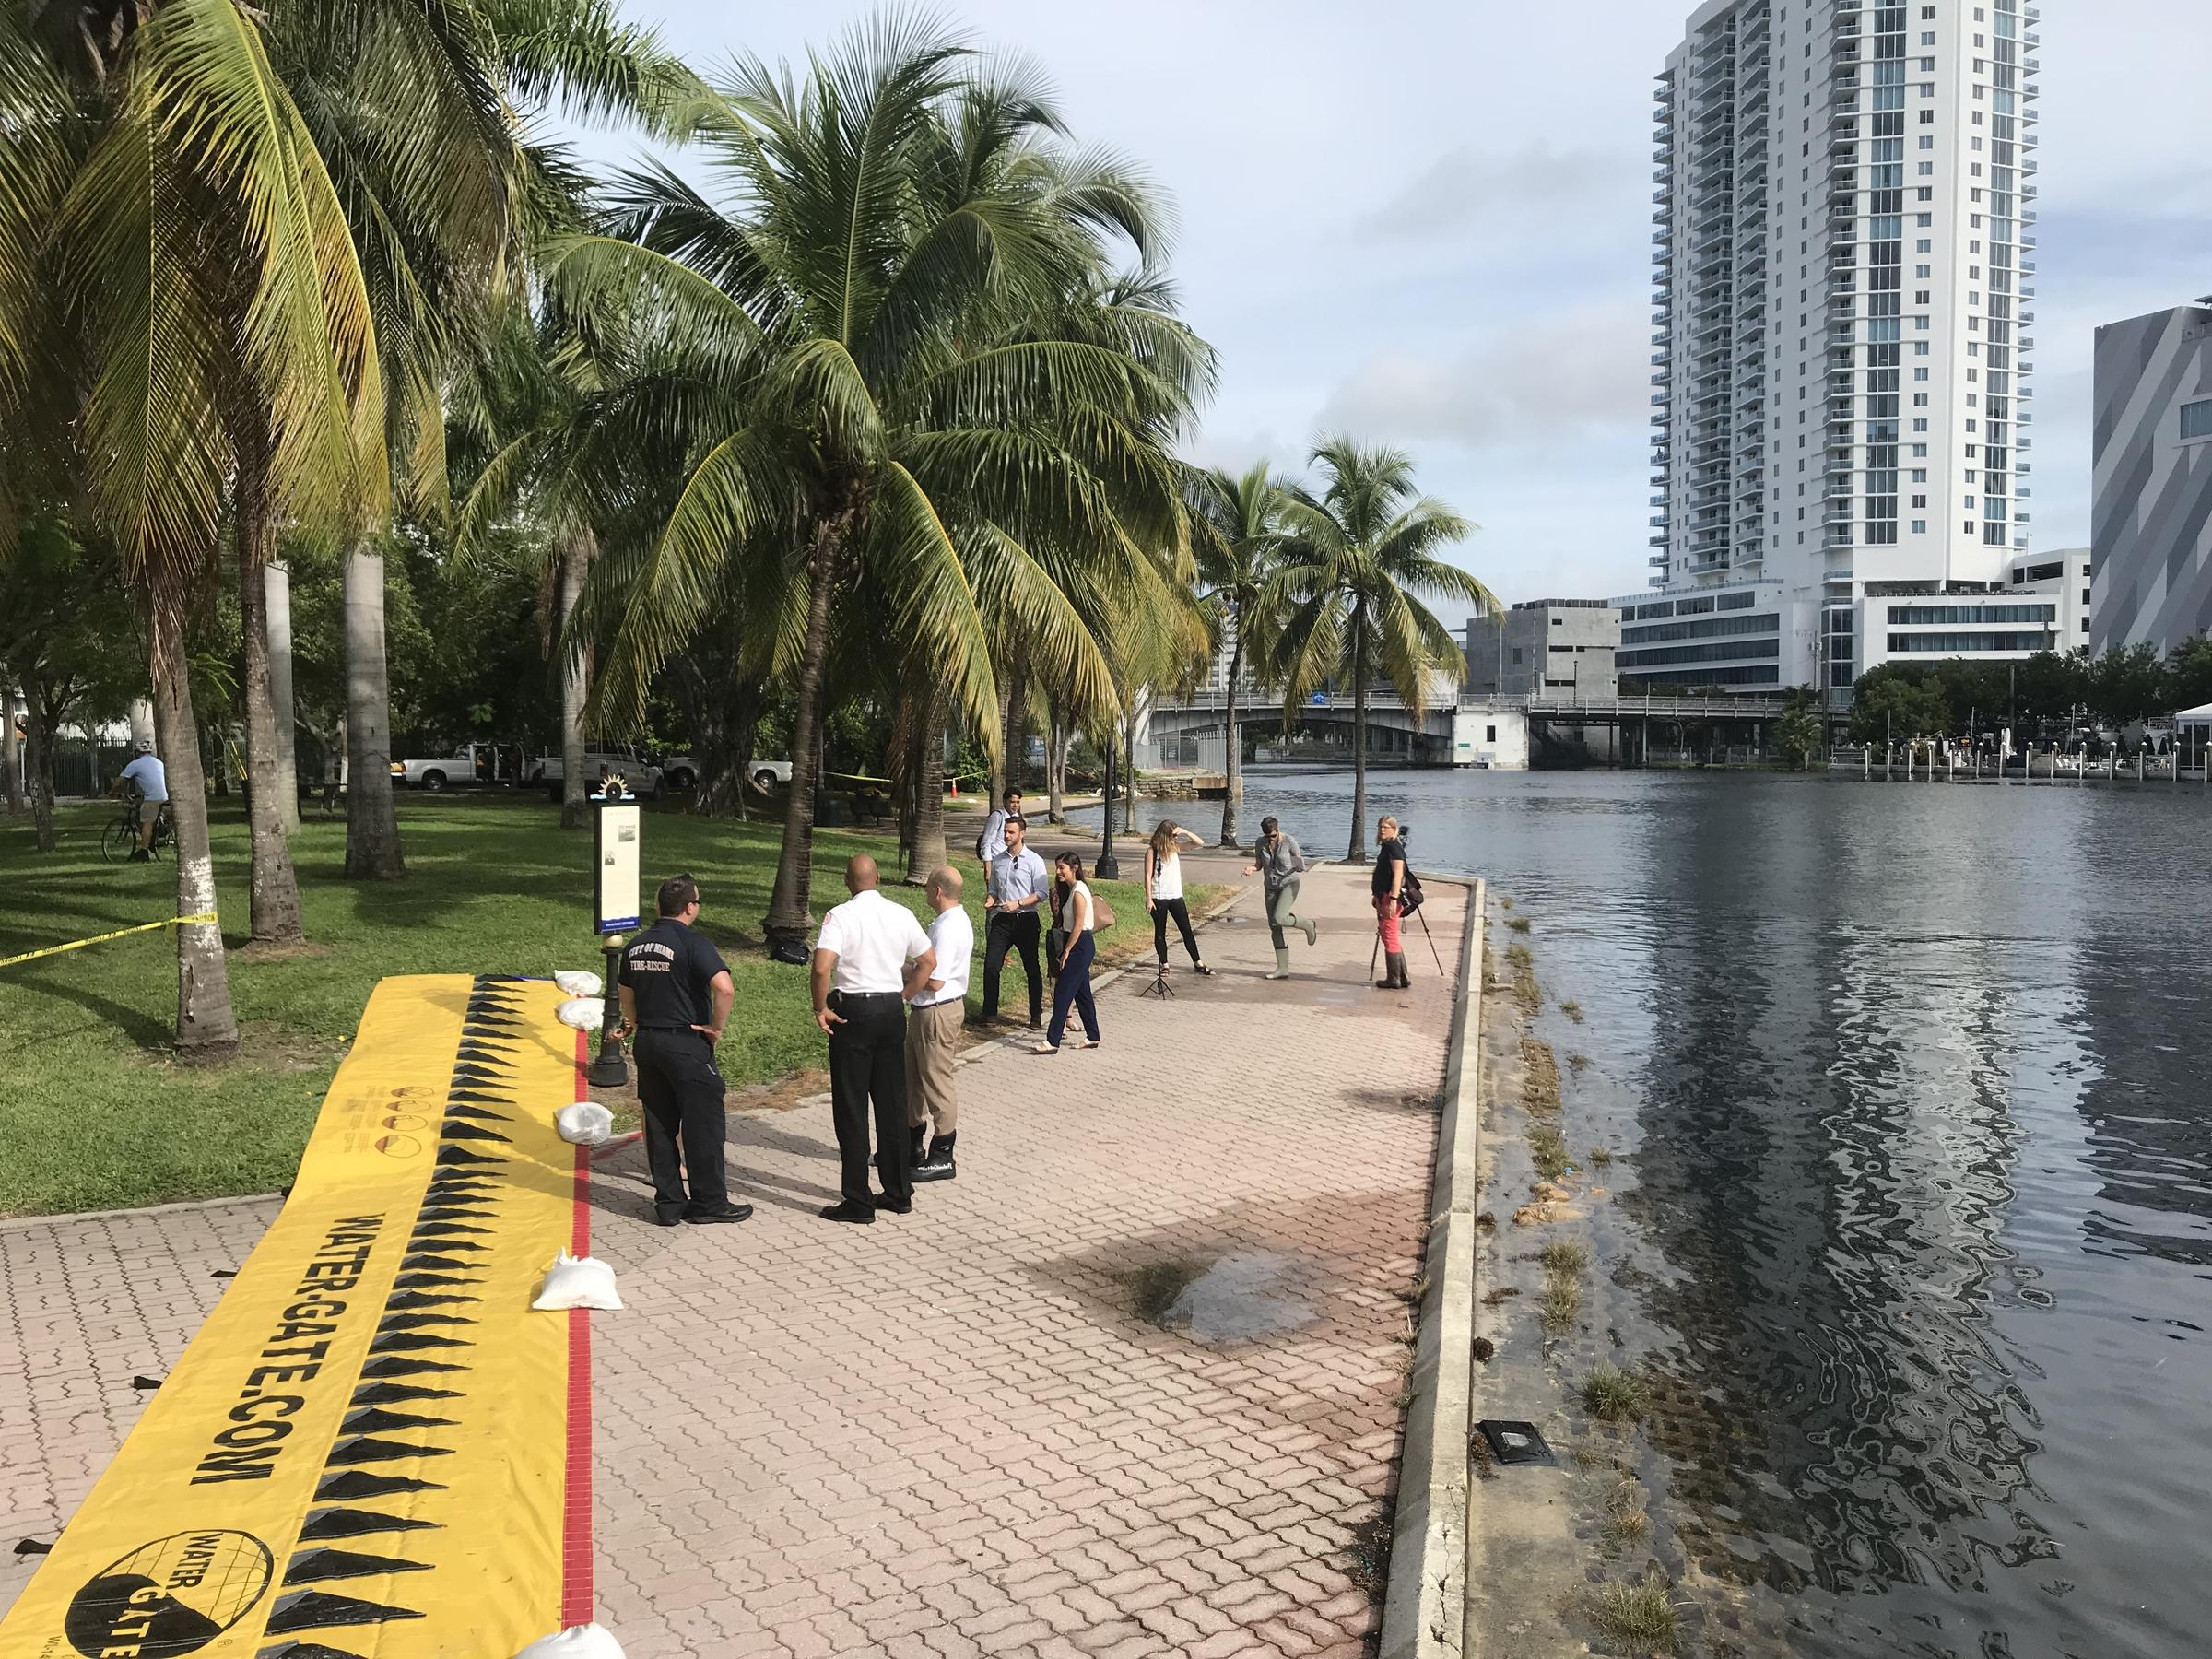 King Tide Gives South Florida A Taste Of Life Underwater | WLRN Underwater Cities Of South Florida Map on map of southwest florida cities, map of south korean cities and towns, map of florida major cities, map of southeast florida cities, full size map of florida cities, map of central florida, map of greater boston cities, map of south carolina cities, florida road map with cities, map of main florida cities, map of southern cal cities, map of broward county cities, map of south african cities, map of broward county florida, southern florida cities, map of louisville cities, map of palm beach county cities, map of miami-dade county, map of so florida, google map florida cities,